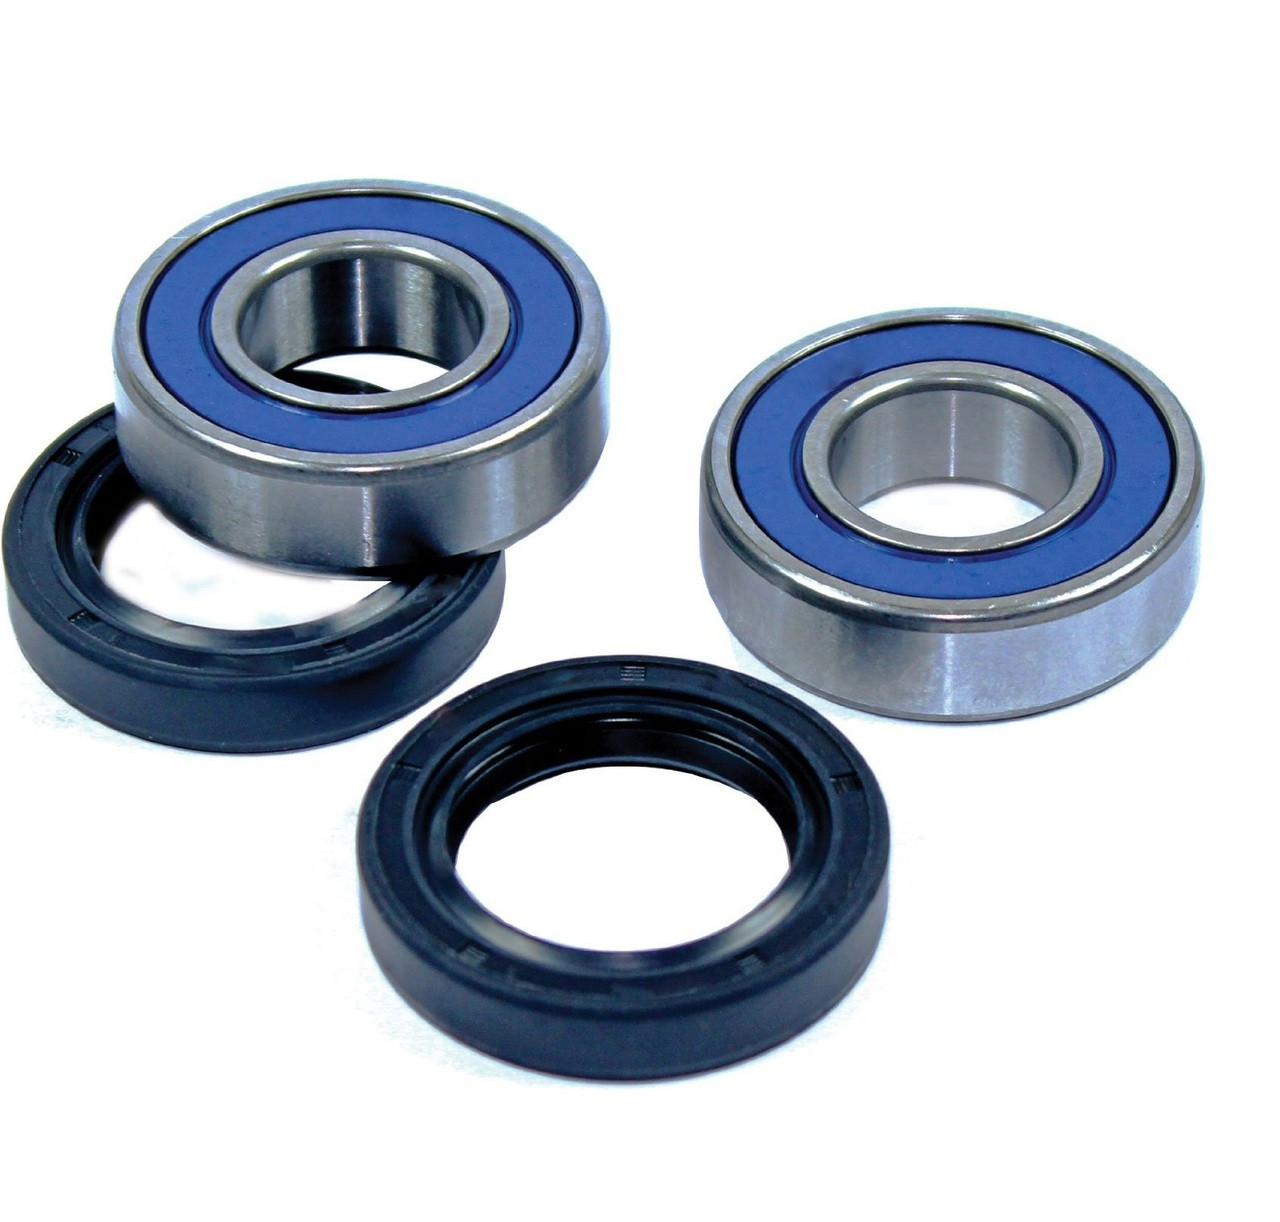 Honda TRX250X FourTrax ATV Rear Wheel Bearing Kit 1987-1988 & 1991-1992 Image